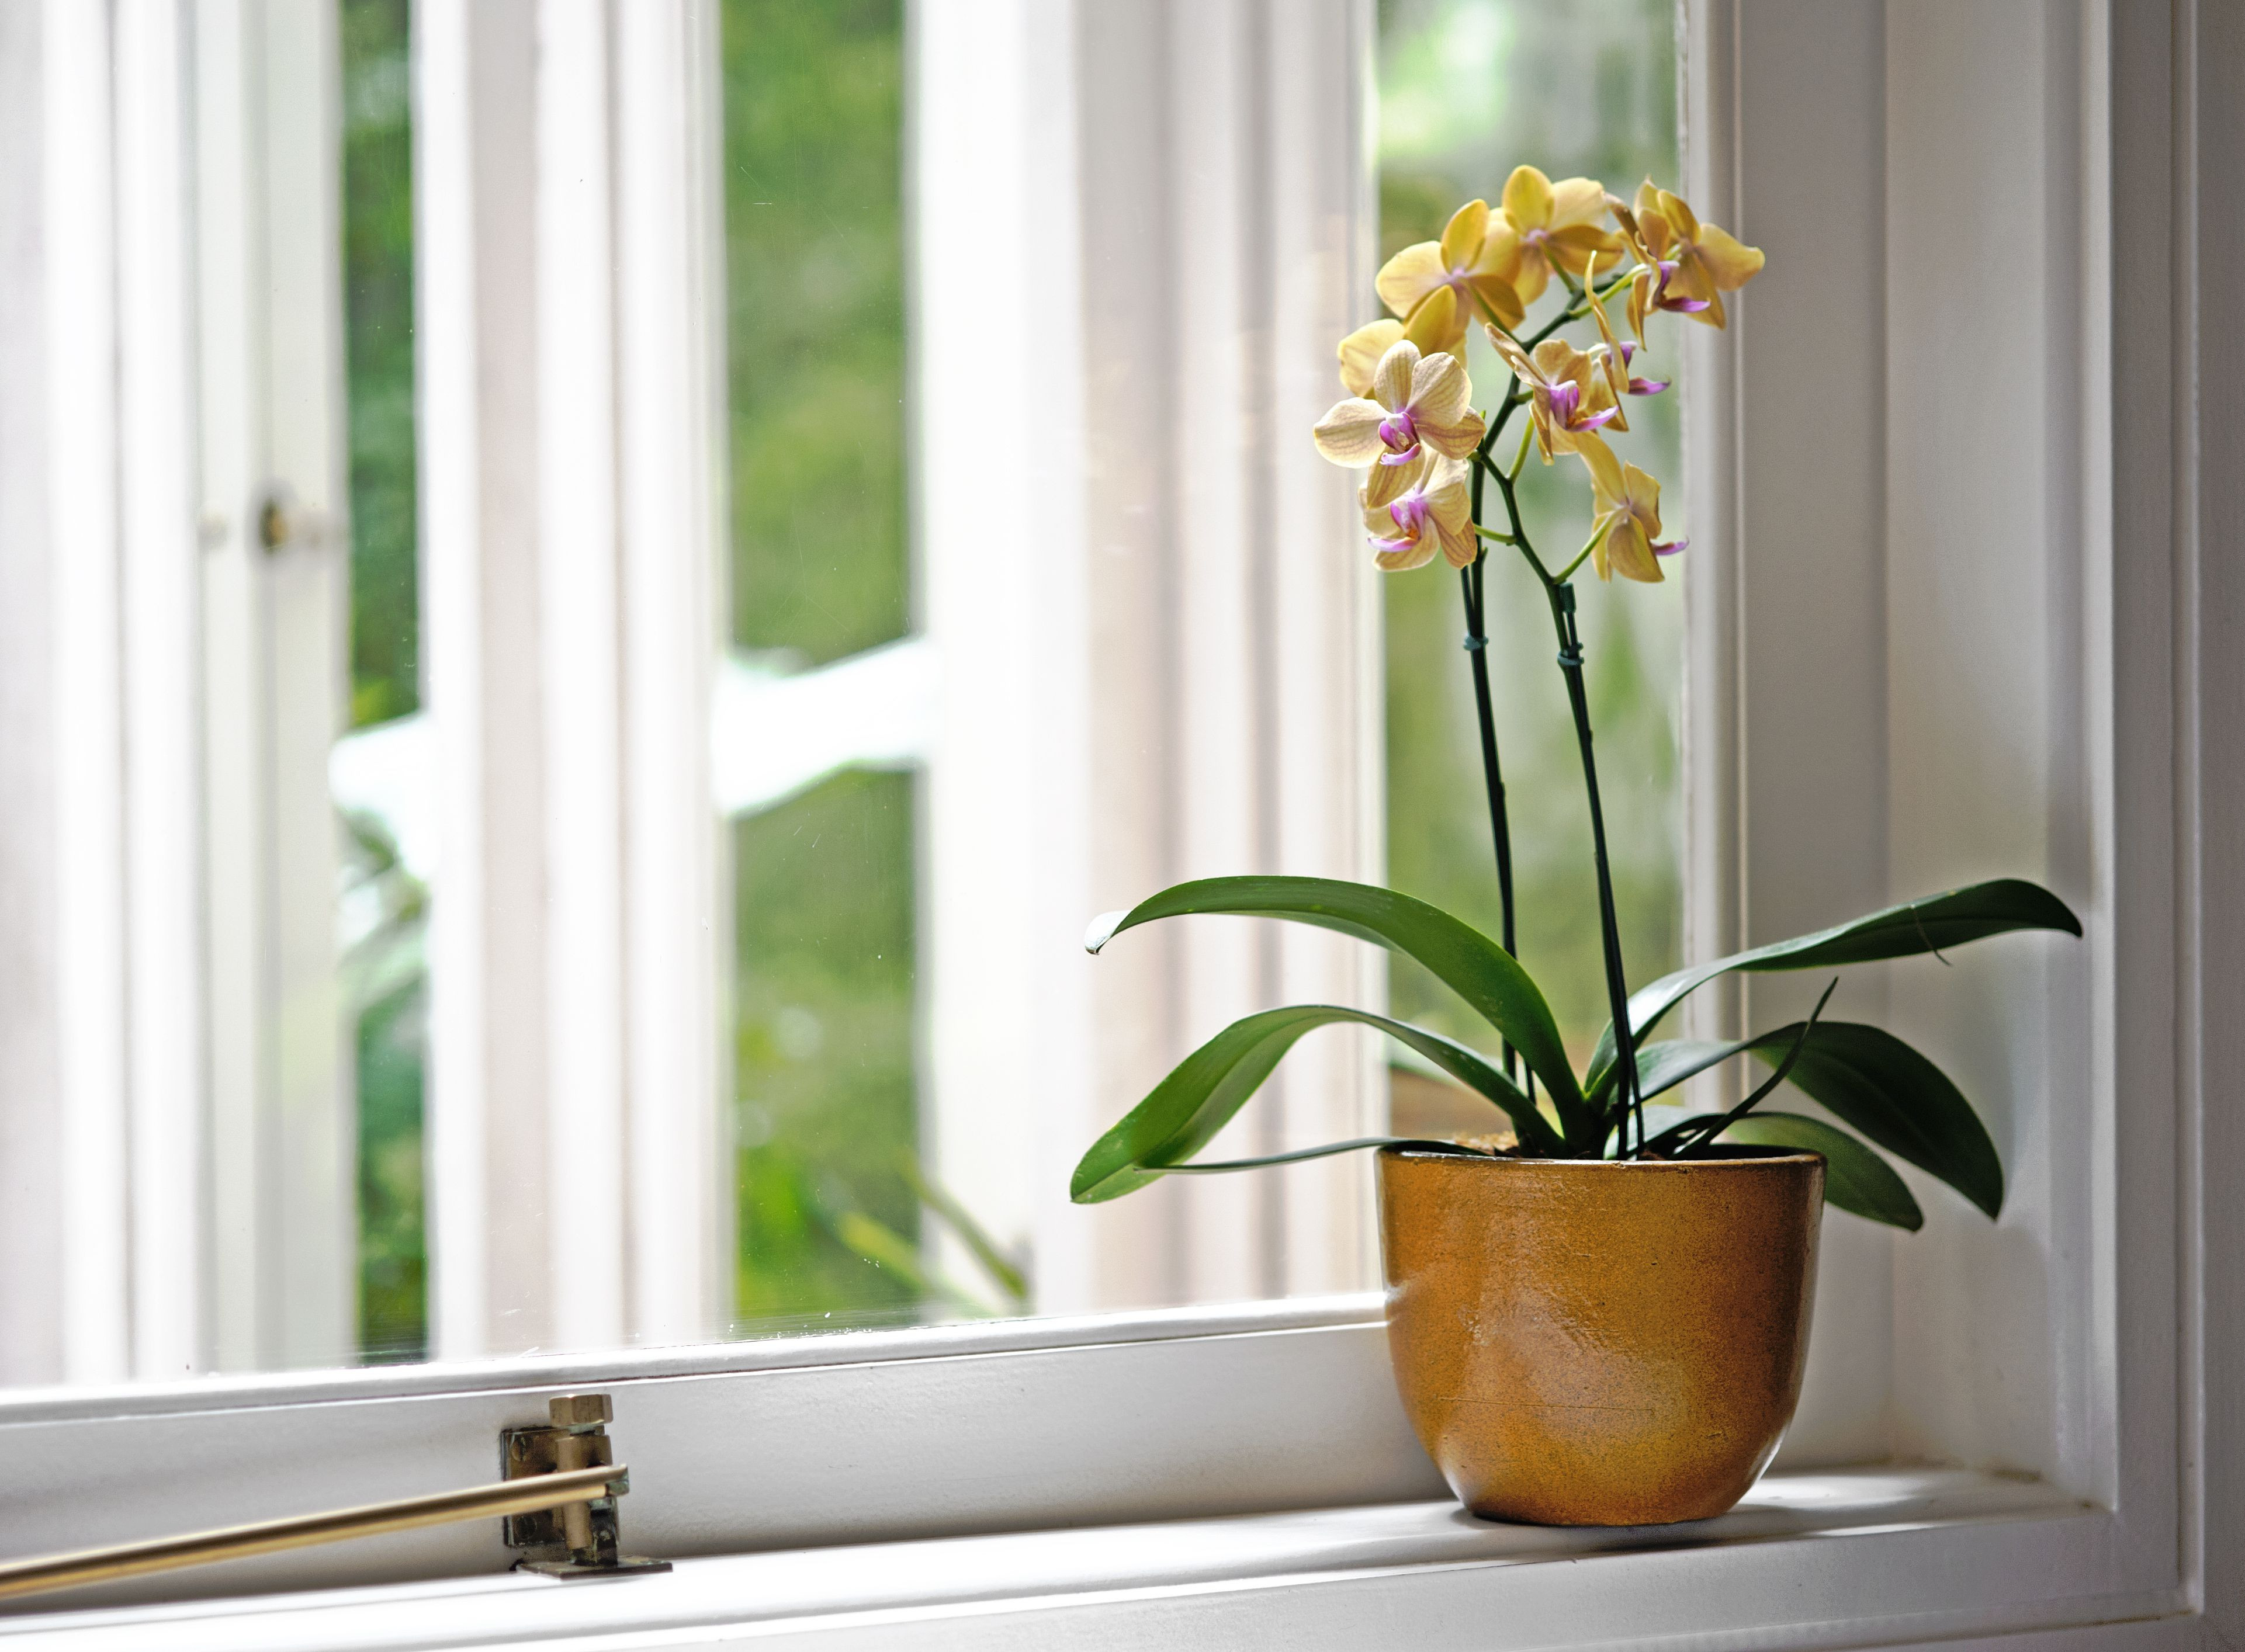 14 Fantastic Silver Vase orchid Care 2021 free download silver vase orchid care of how to cure orchid scale in yellow orchid in a yellow vase by the window 693426690 5af876153128340037c6ebc3